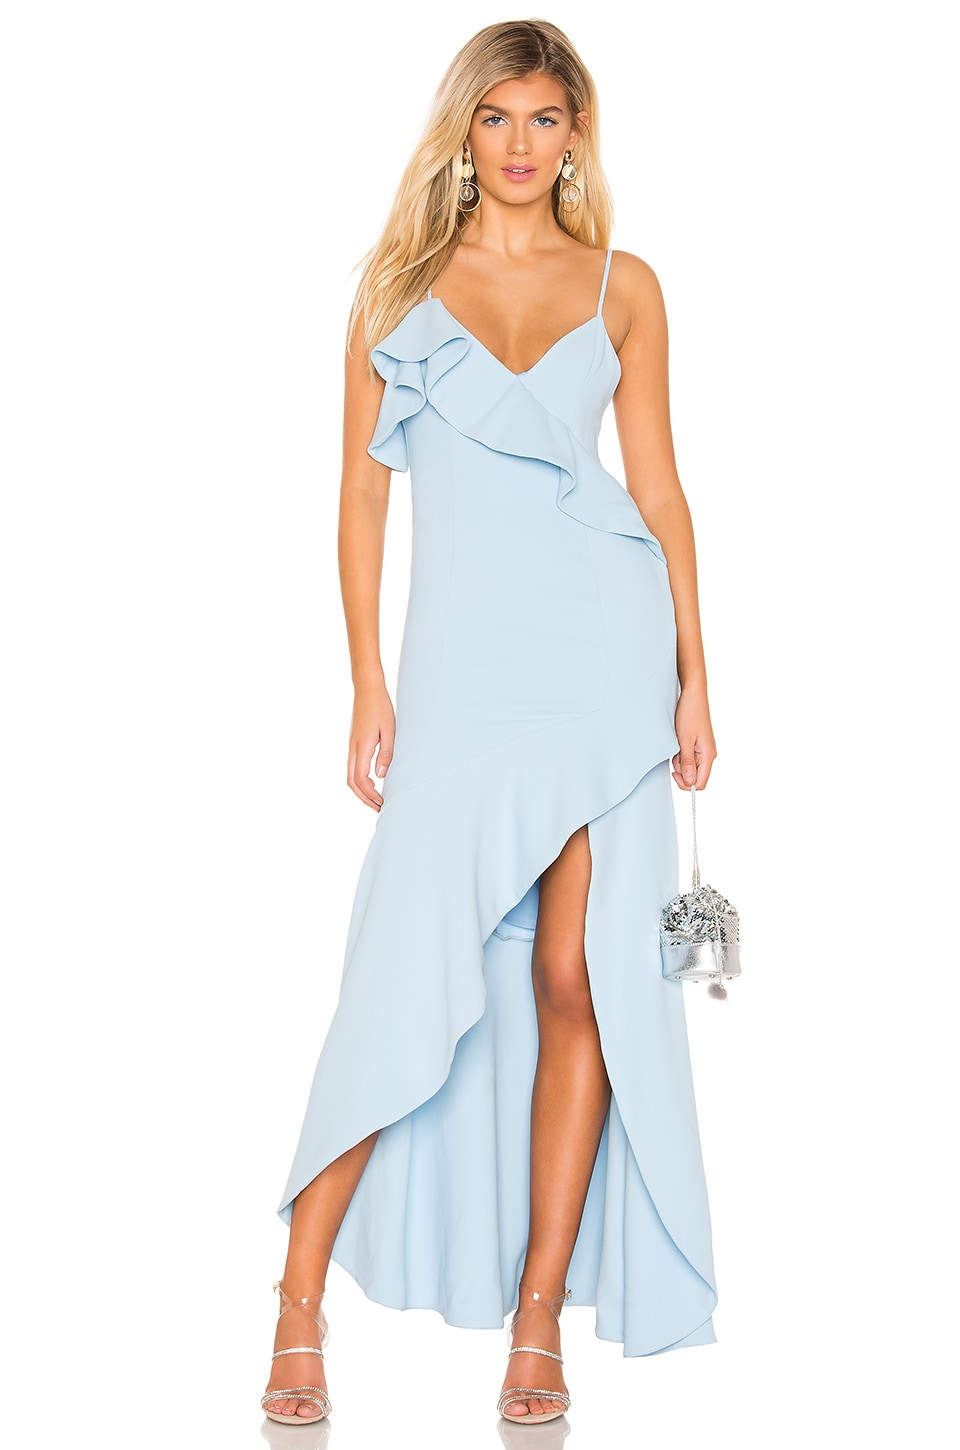 NBD Suter Gown in Baby Blue